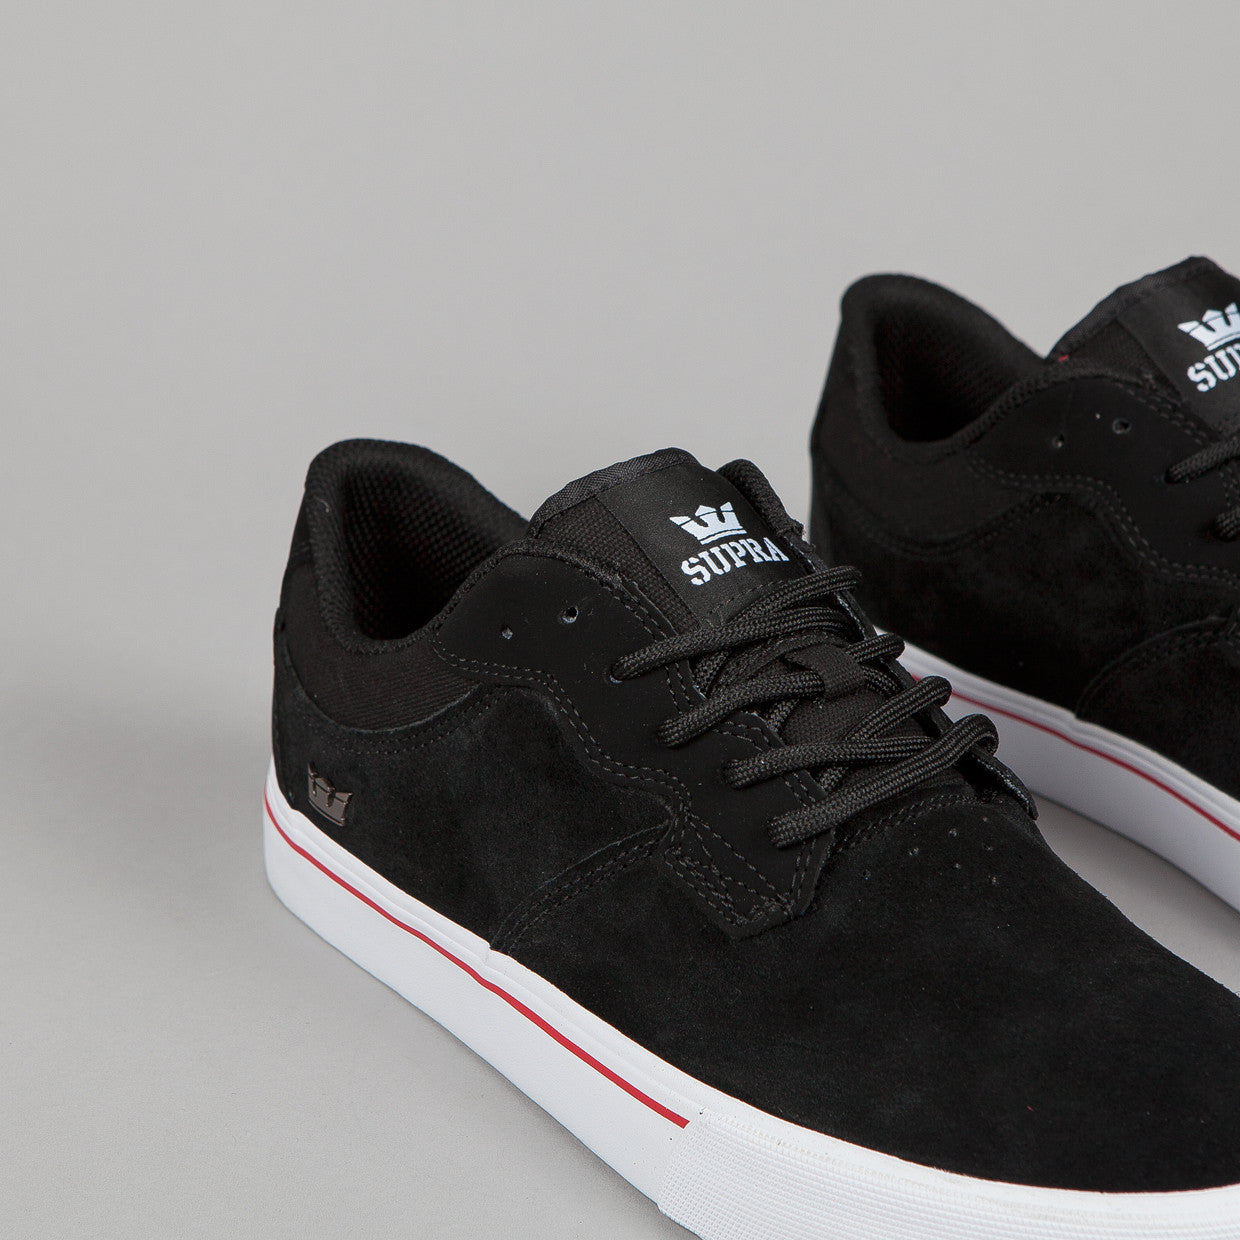 Supra Axle Black / White